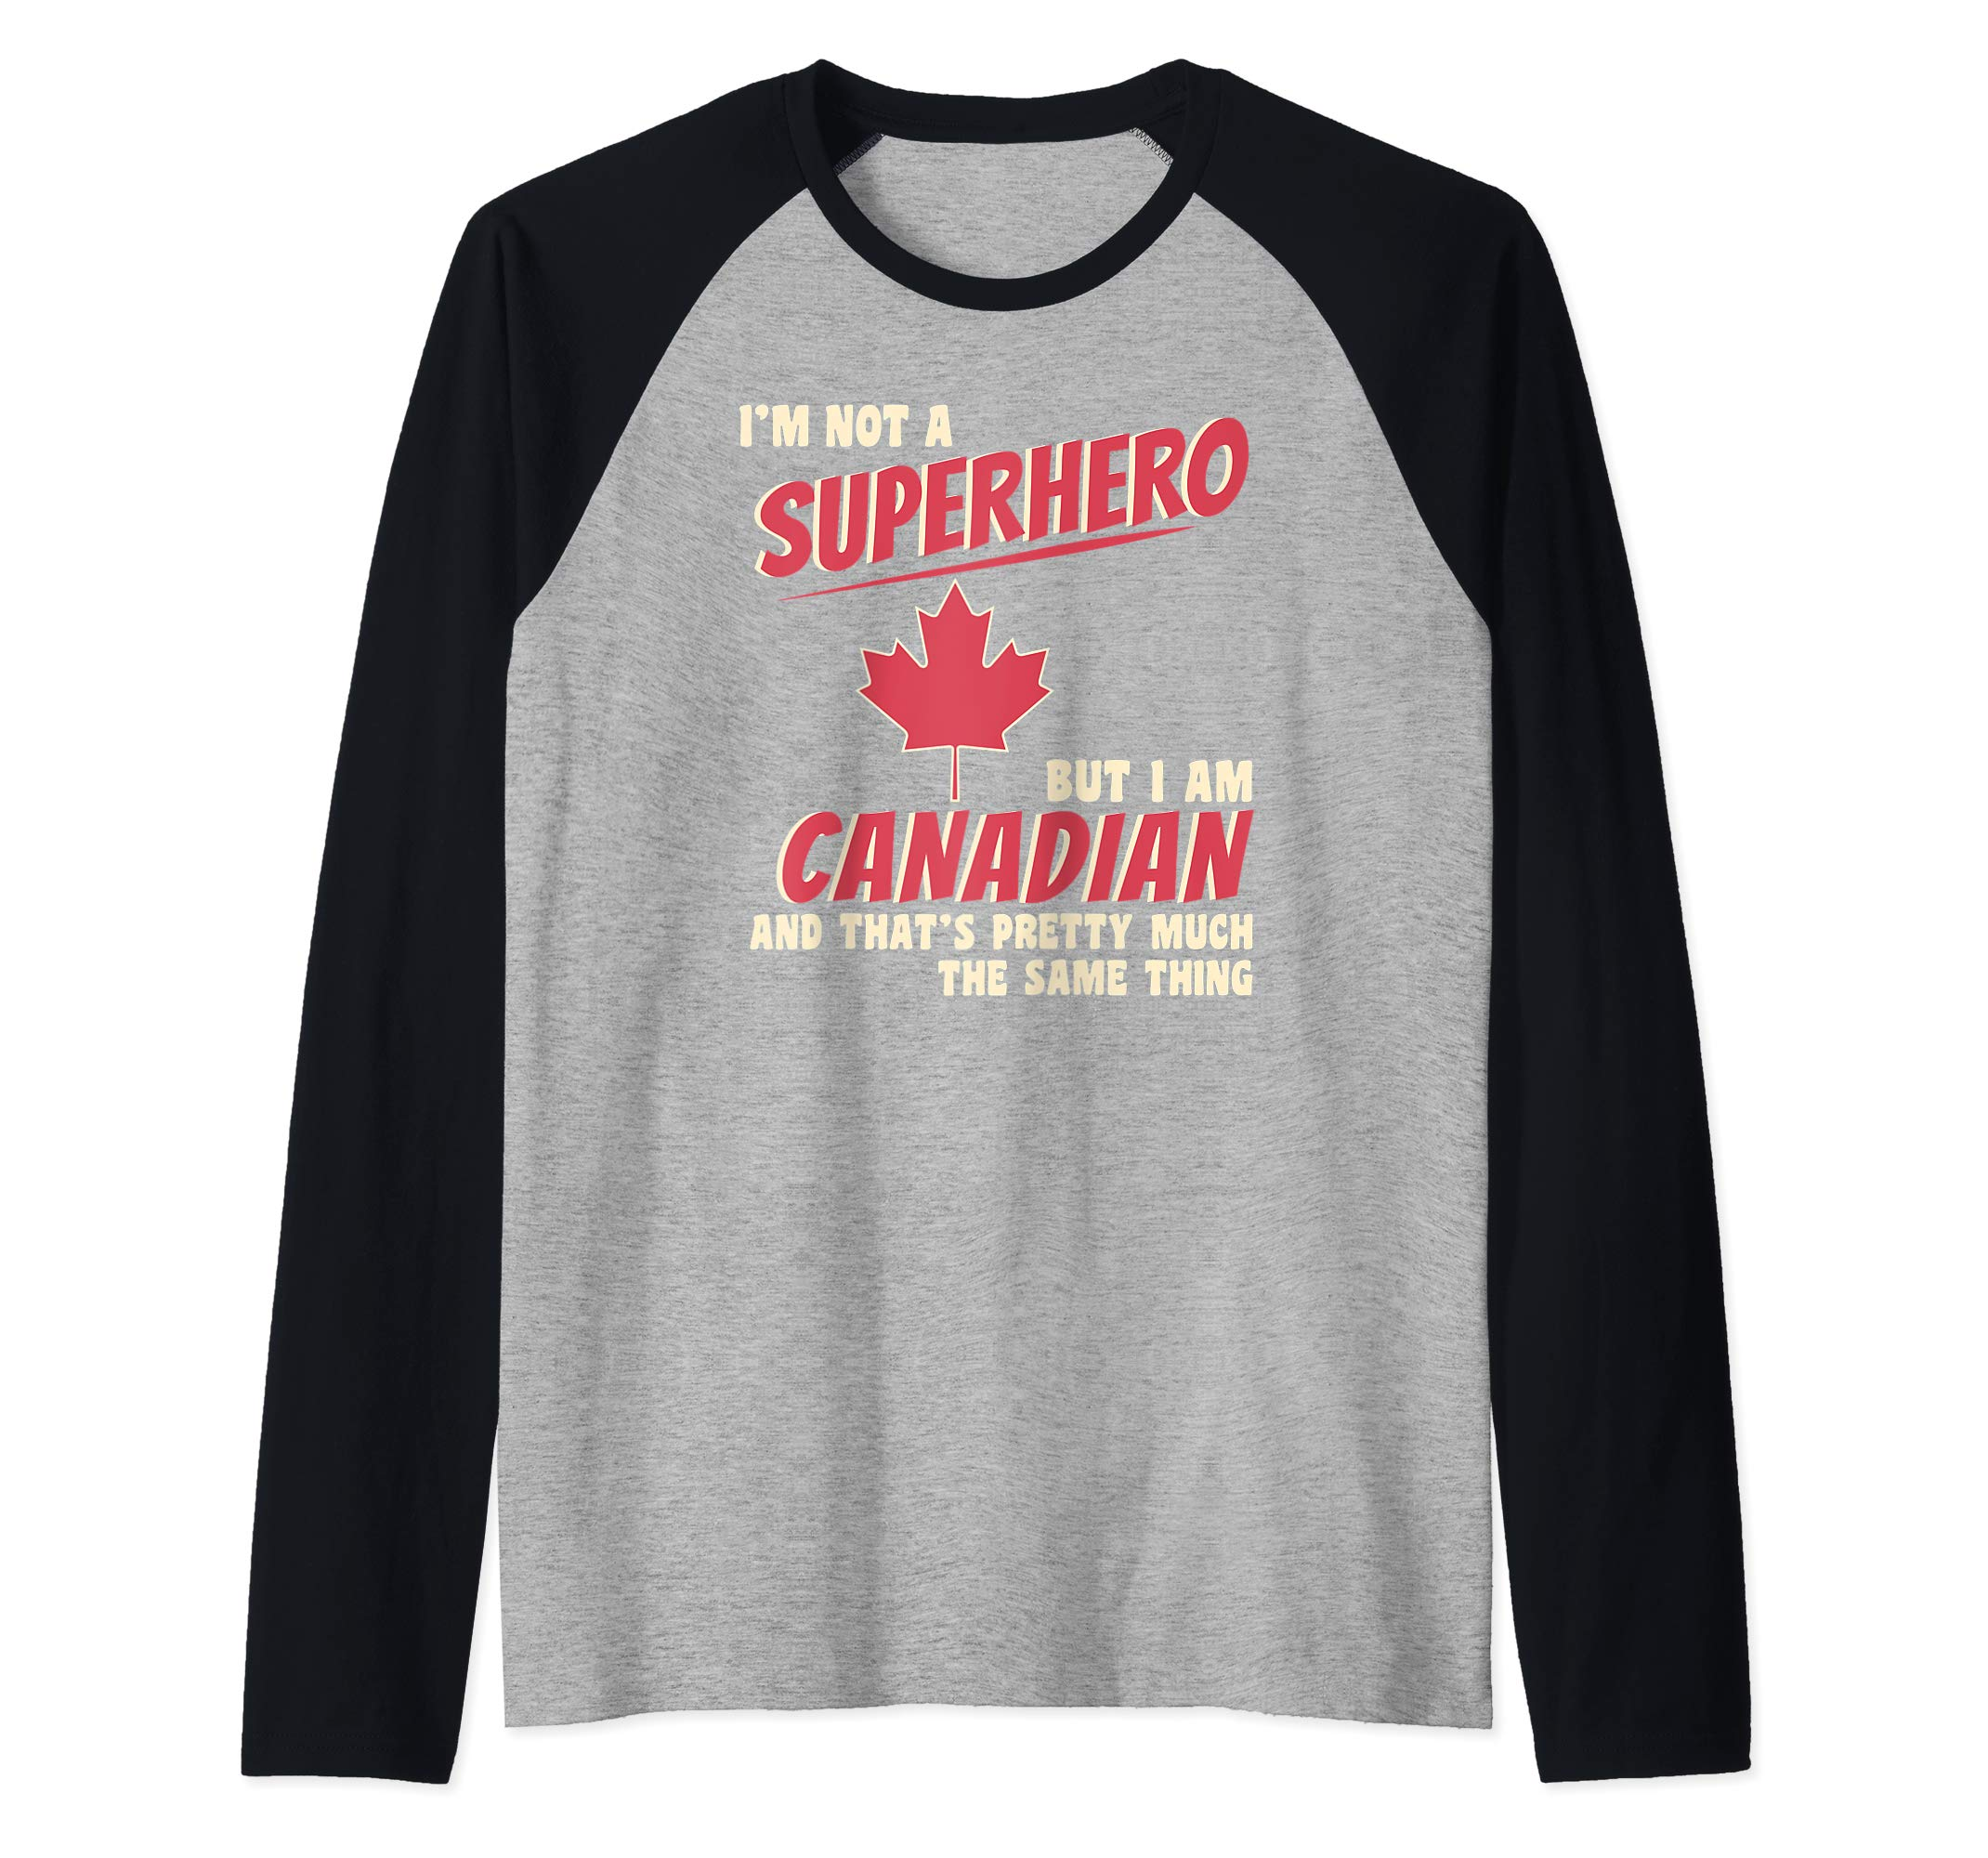 Canada Day Funny Png - Amazon.com: Superhero Canadian Gift | Funny Canada Day Maple Laf ...